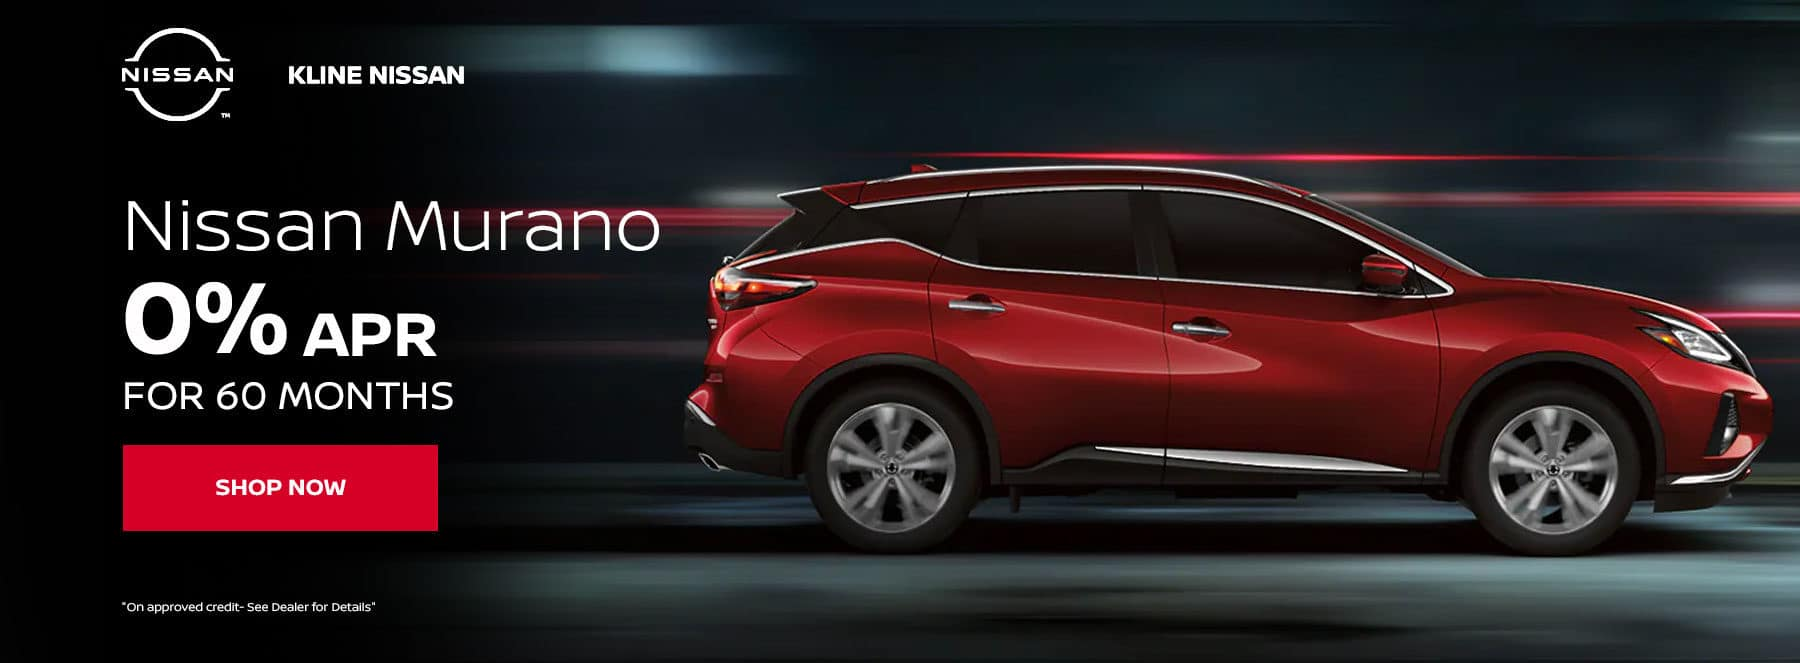 Murano 0.0% APR for 60 months